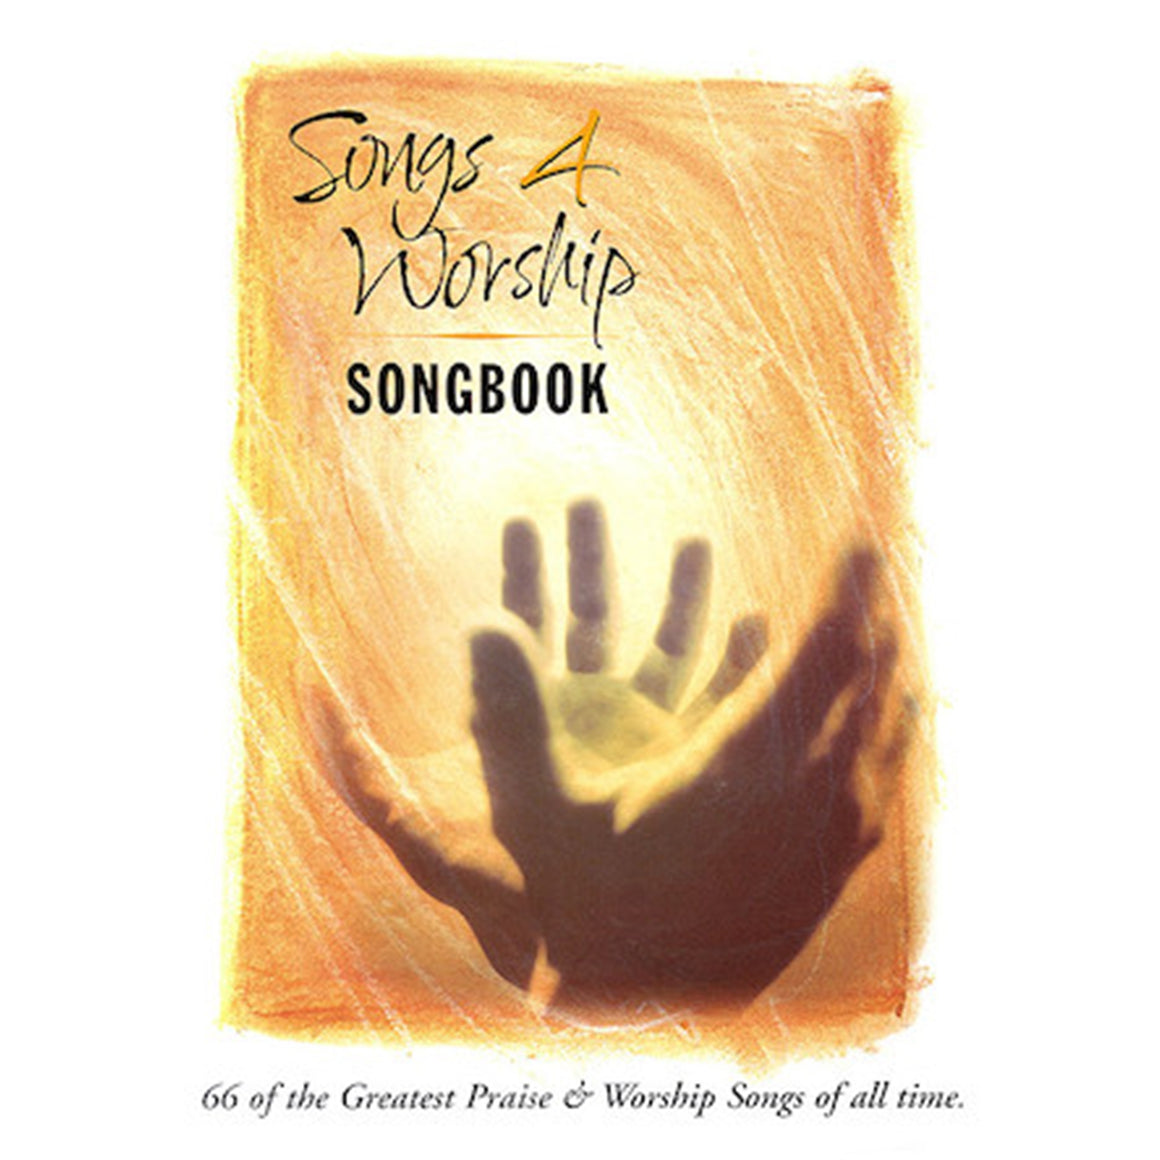 HAL LEONARD 8739289 Songs 4 Worship Songbook